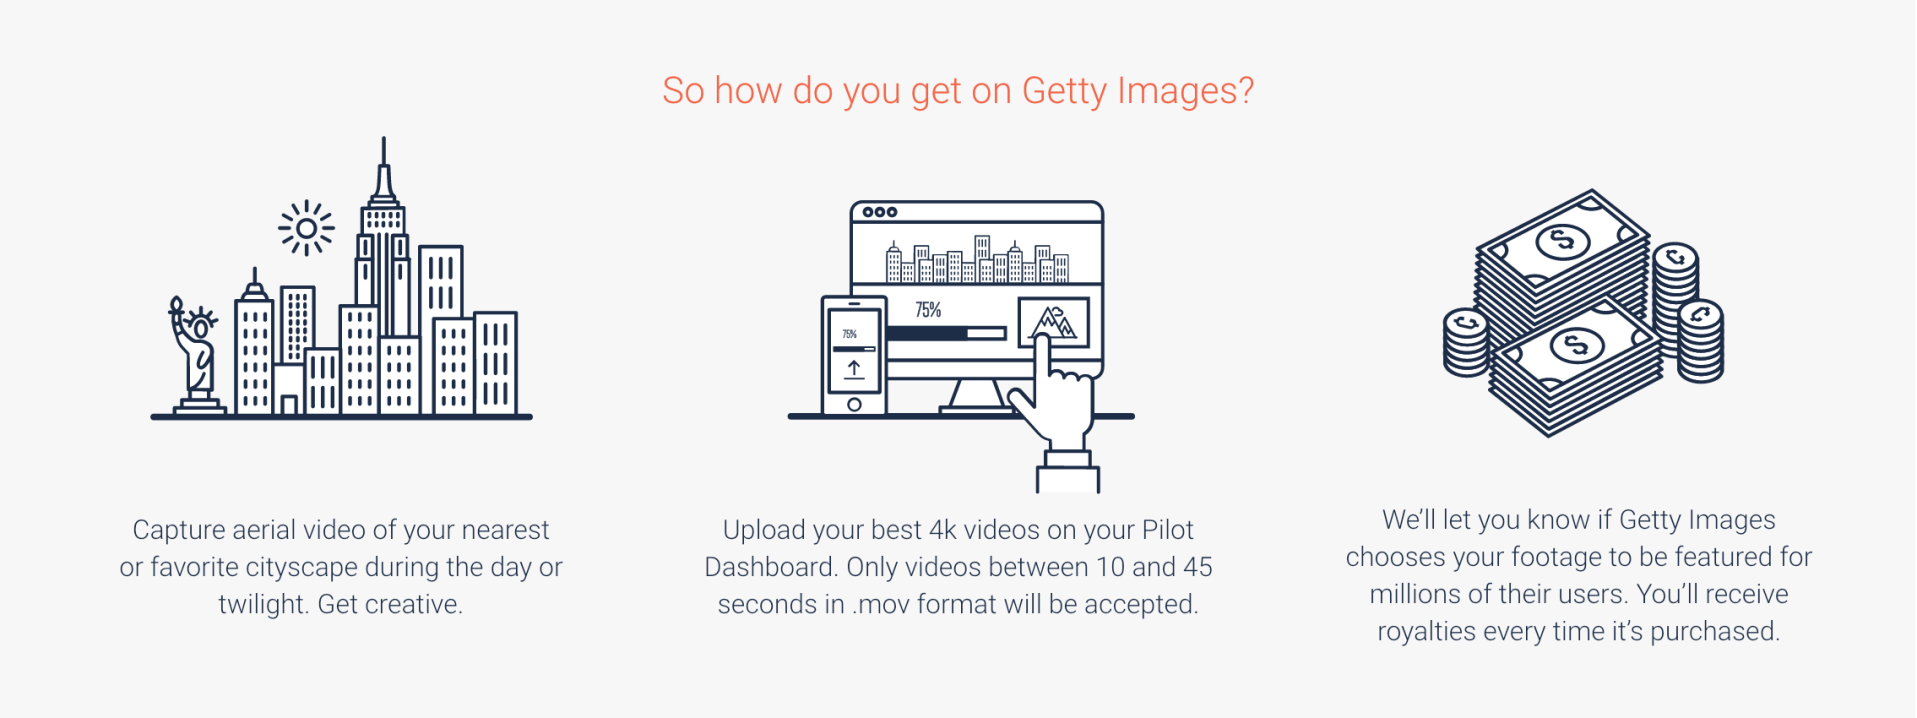 Getty_infographic_steps_option2@2x.png